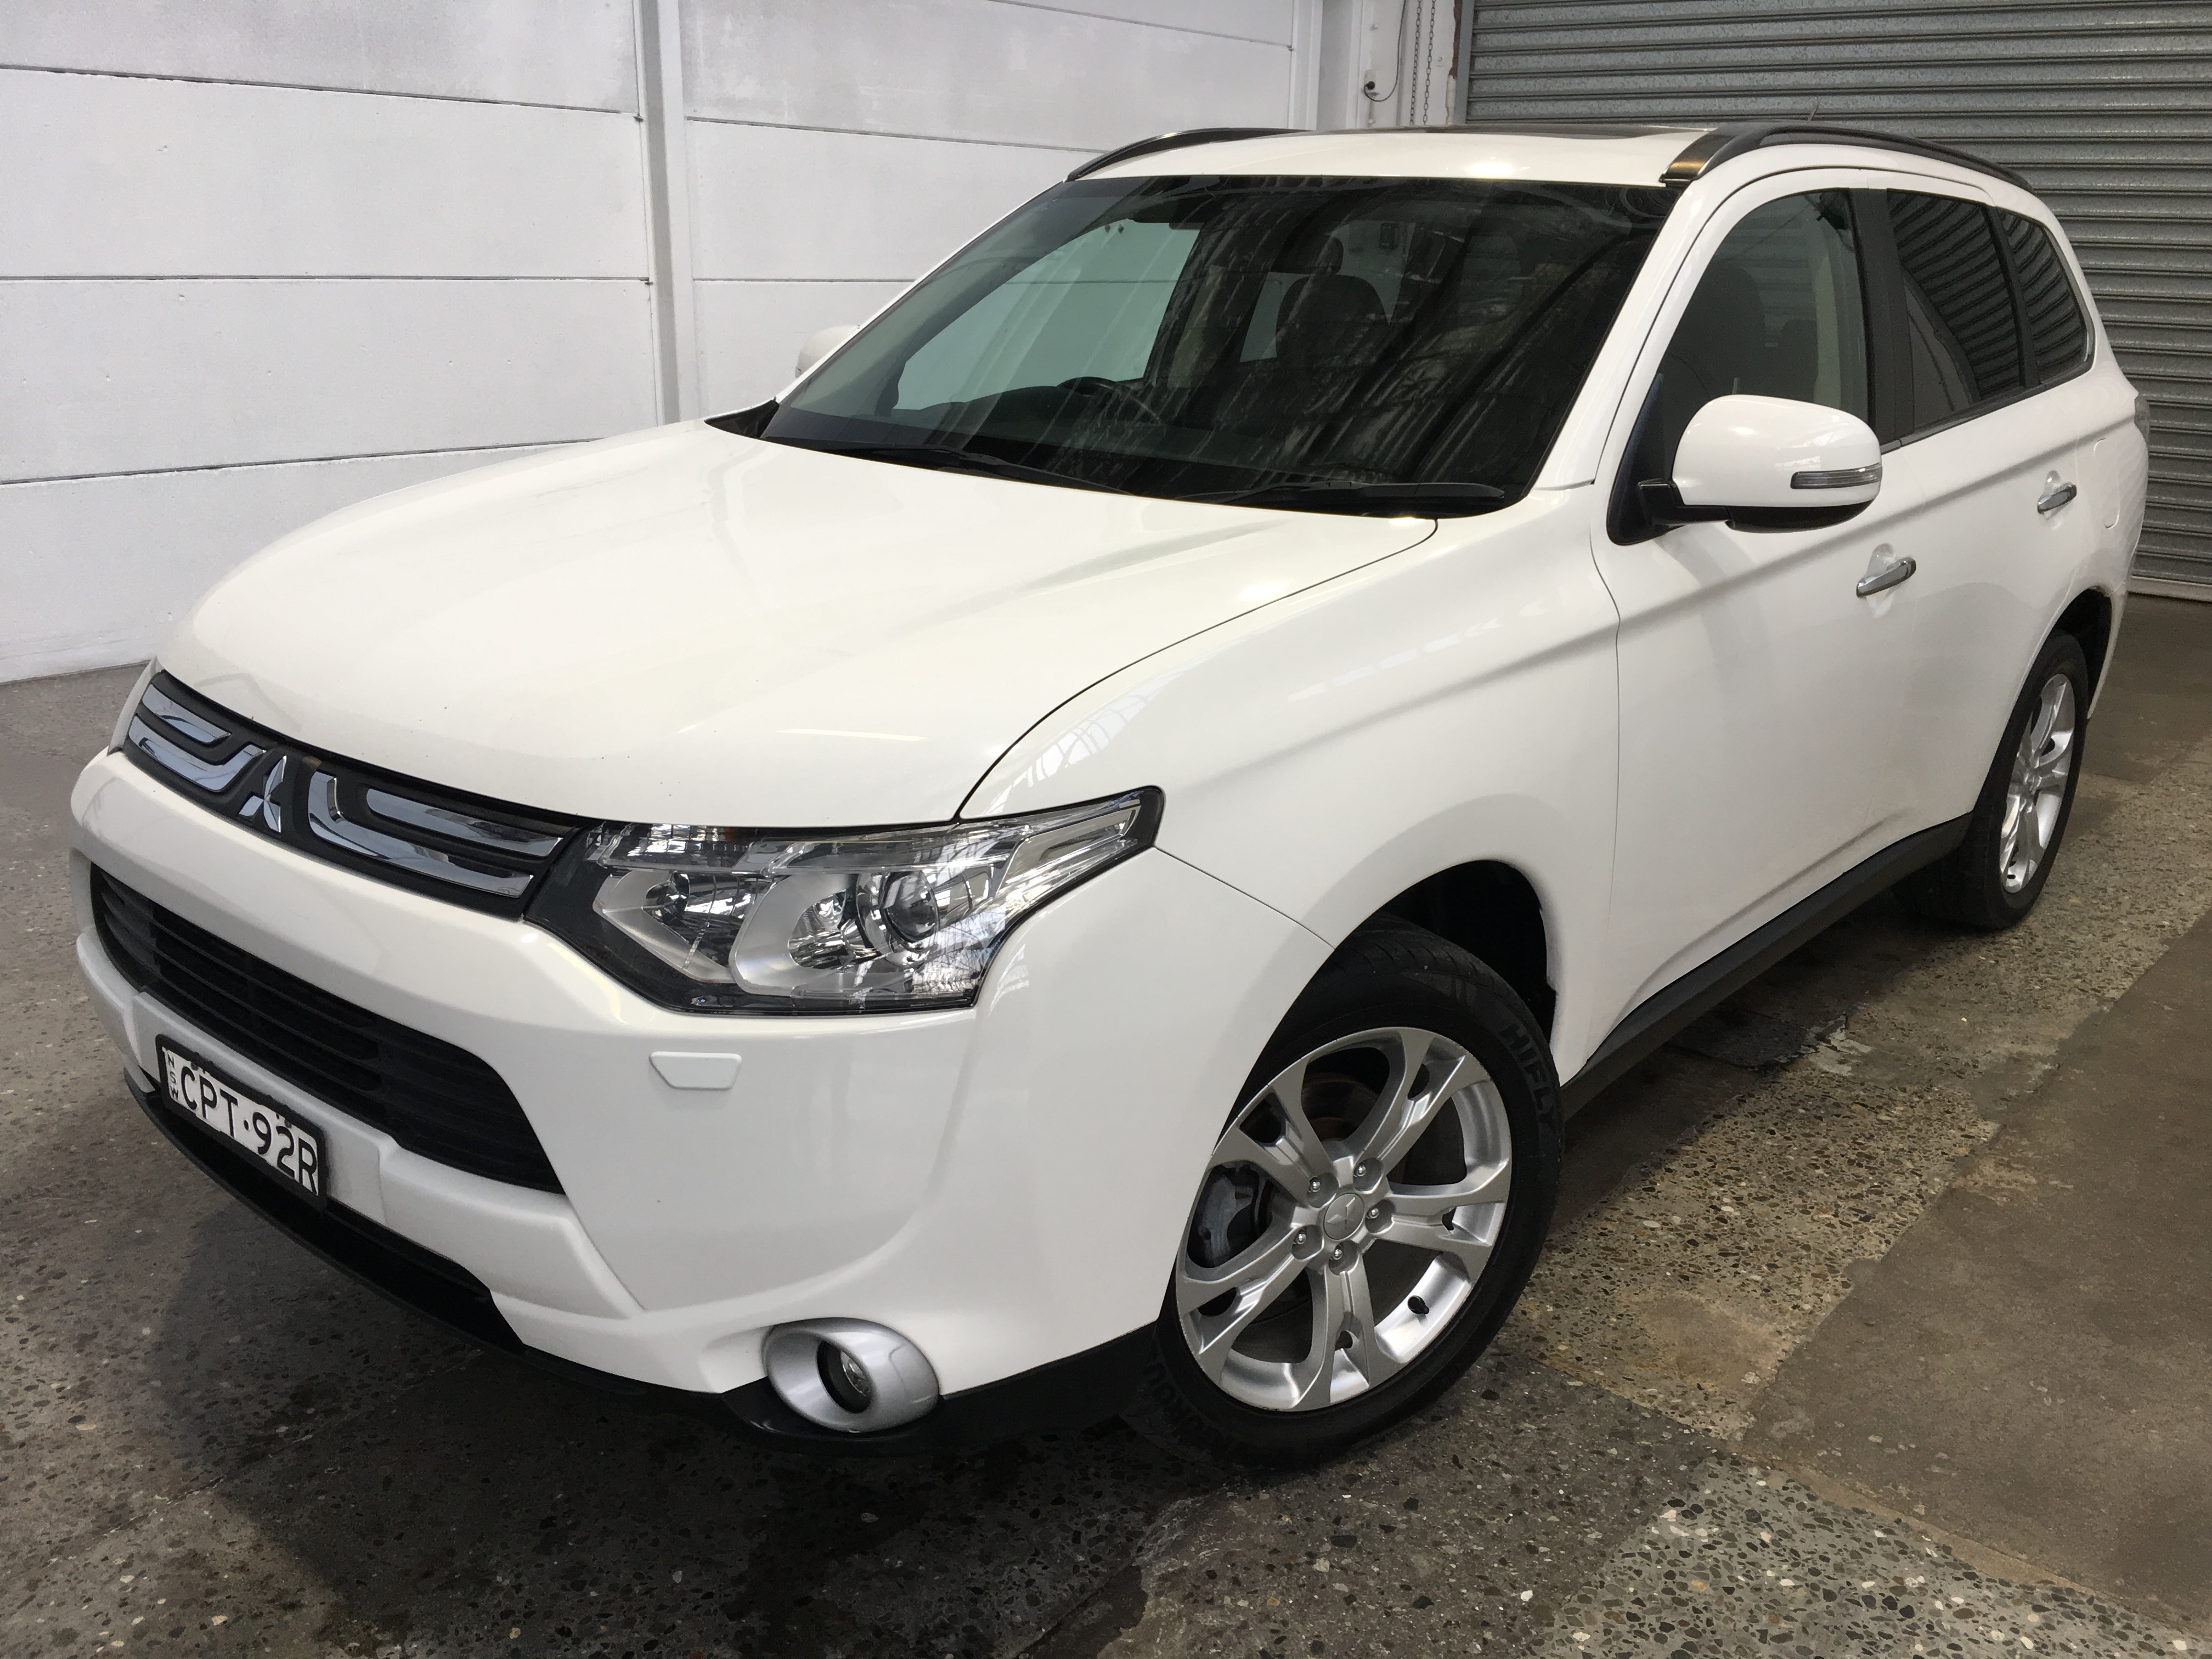 2013 Mitsubishi Outlander ASPIRE 4WD ZJ T/Diesel Automatic 7 Seats Wagon